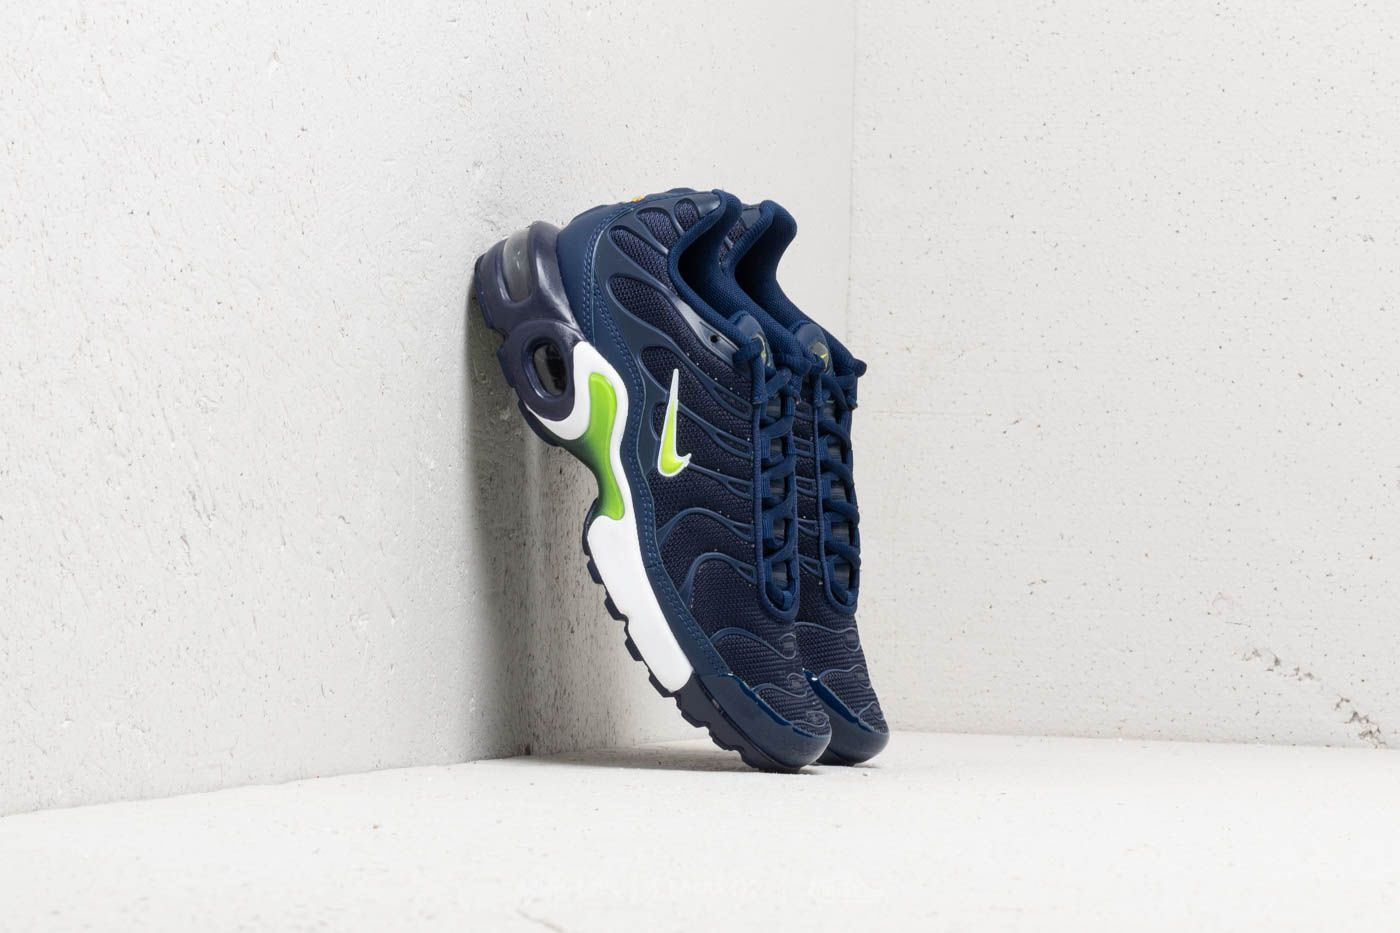 separation shoes 76baf 9fe47 Nike Air Max Plus (GS). Midnight Navy  Volt-Blue Void